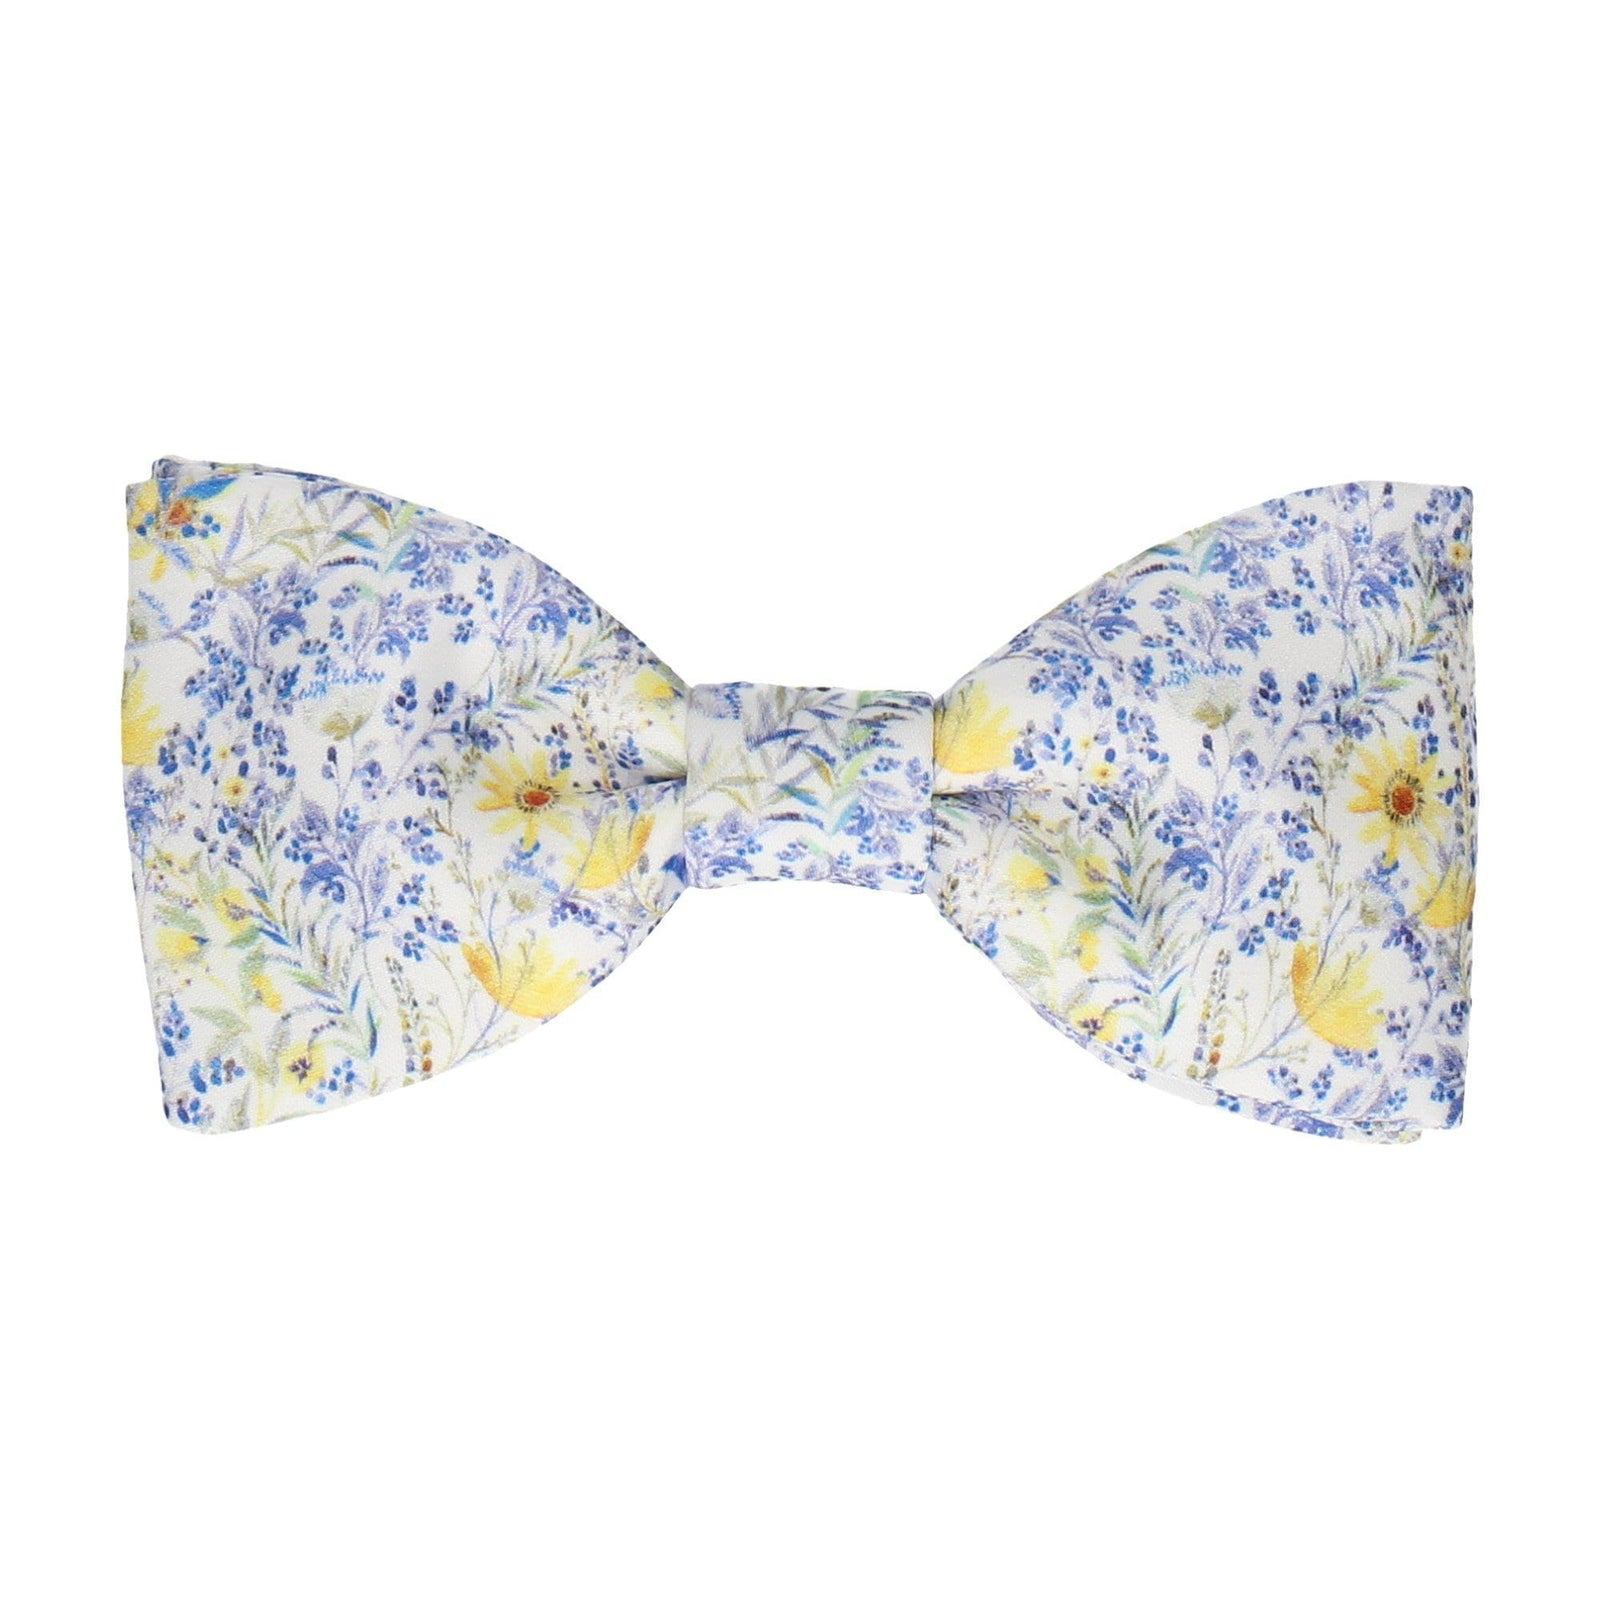 Light Blue & White Floral Bow Tie